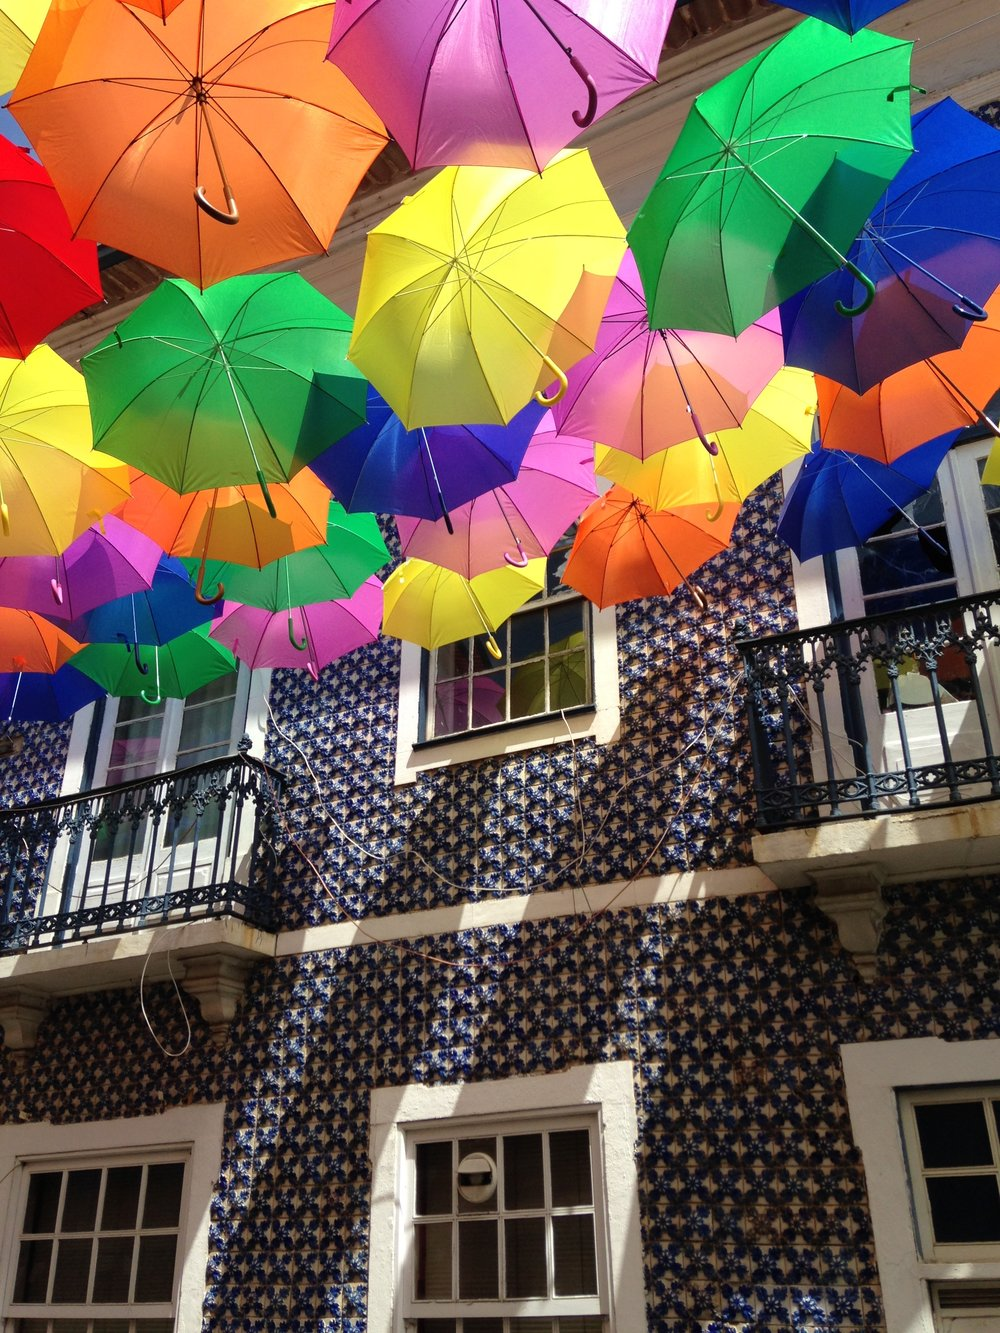 colorful umbrellas in portugal